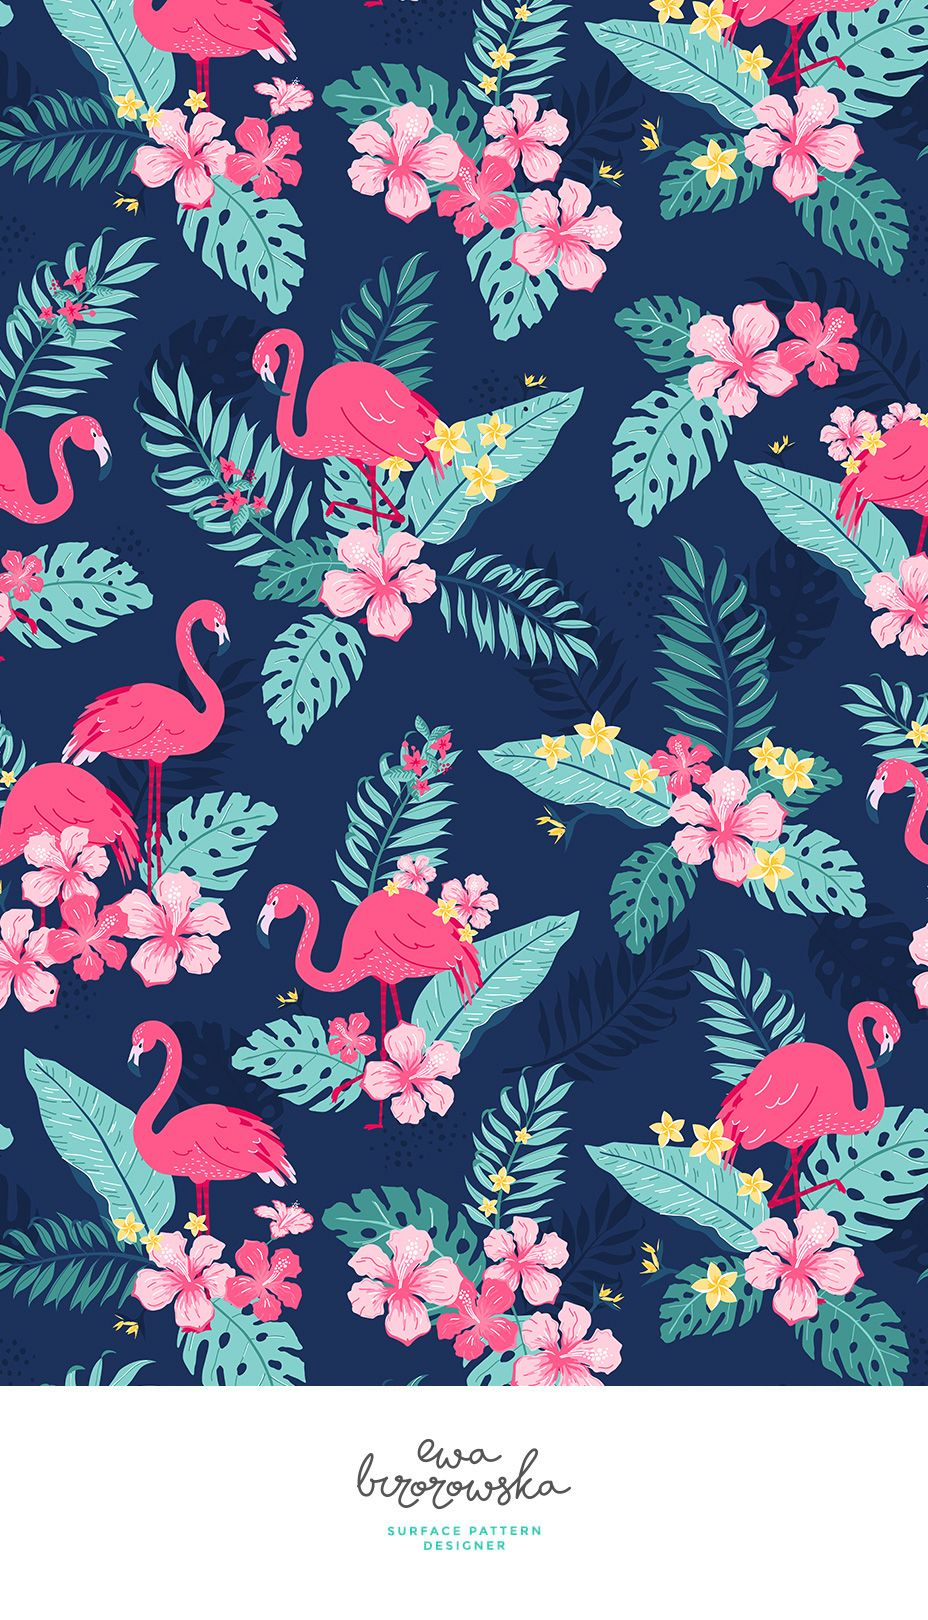 Tropical rush - textile design, pattern design, cute pattern, illustration, children illustration, children bedding, children pattern design, flamingo, tropical, jungle, tropical pattern, floral, flowers, leaves, palm, summer, navy #tropicalpattern